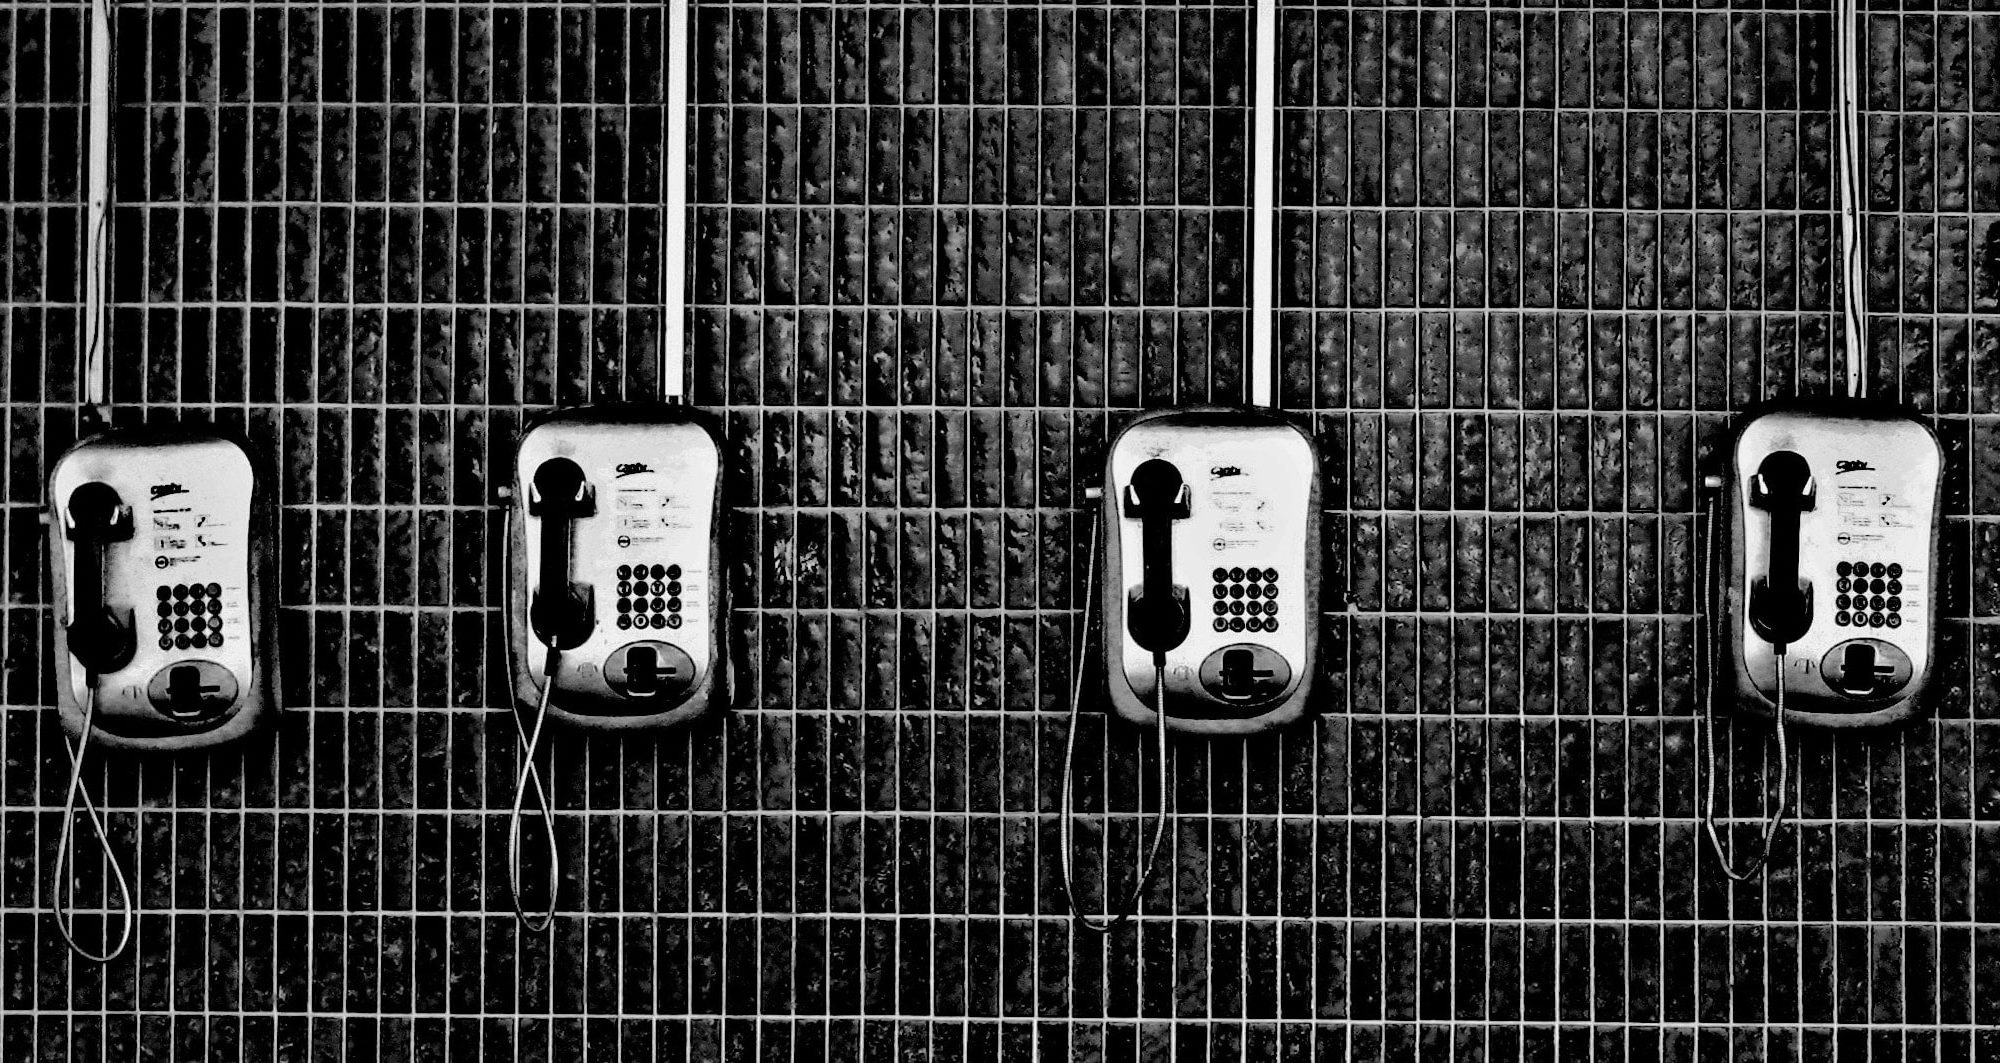 A line of phones, as in a prison cell after celebrity DUI's